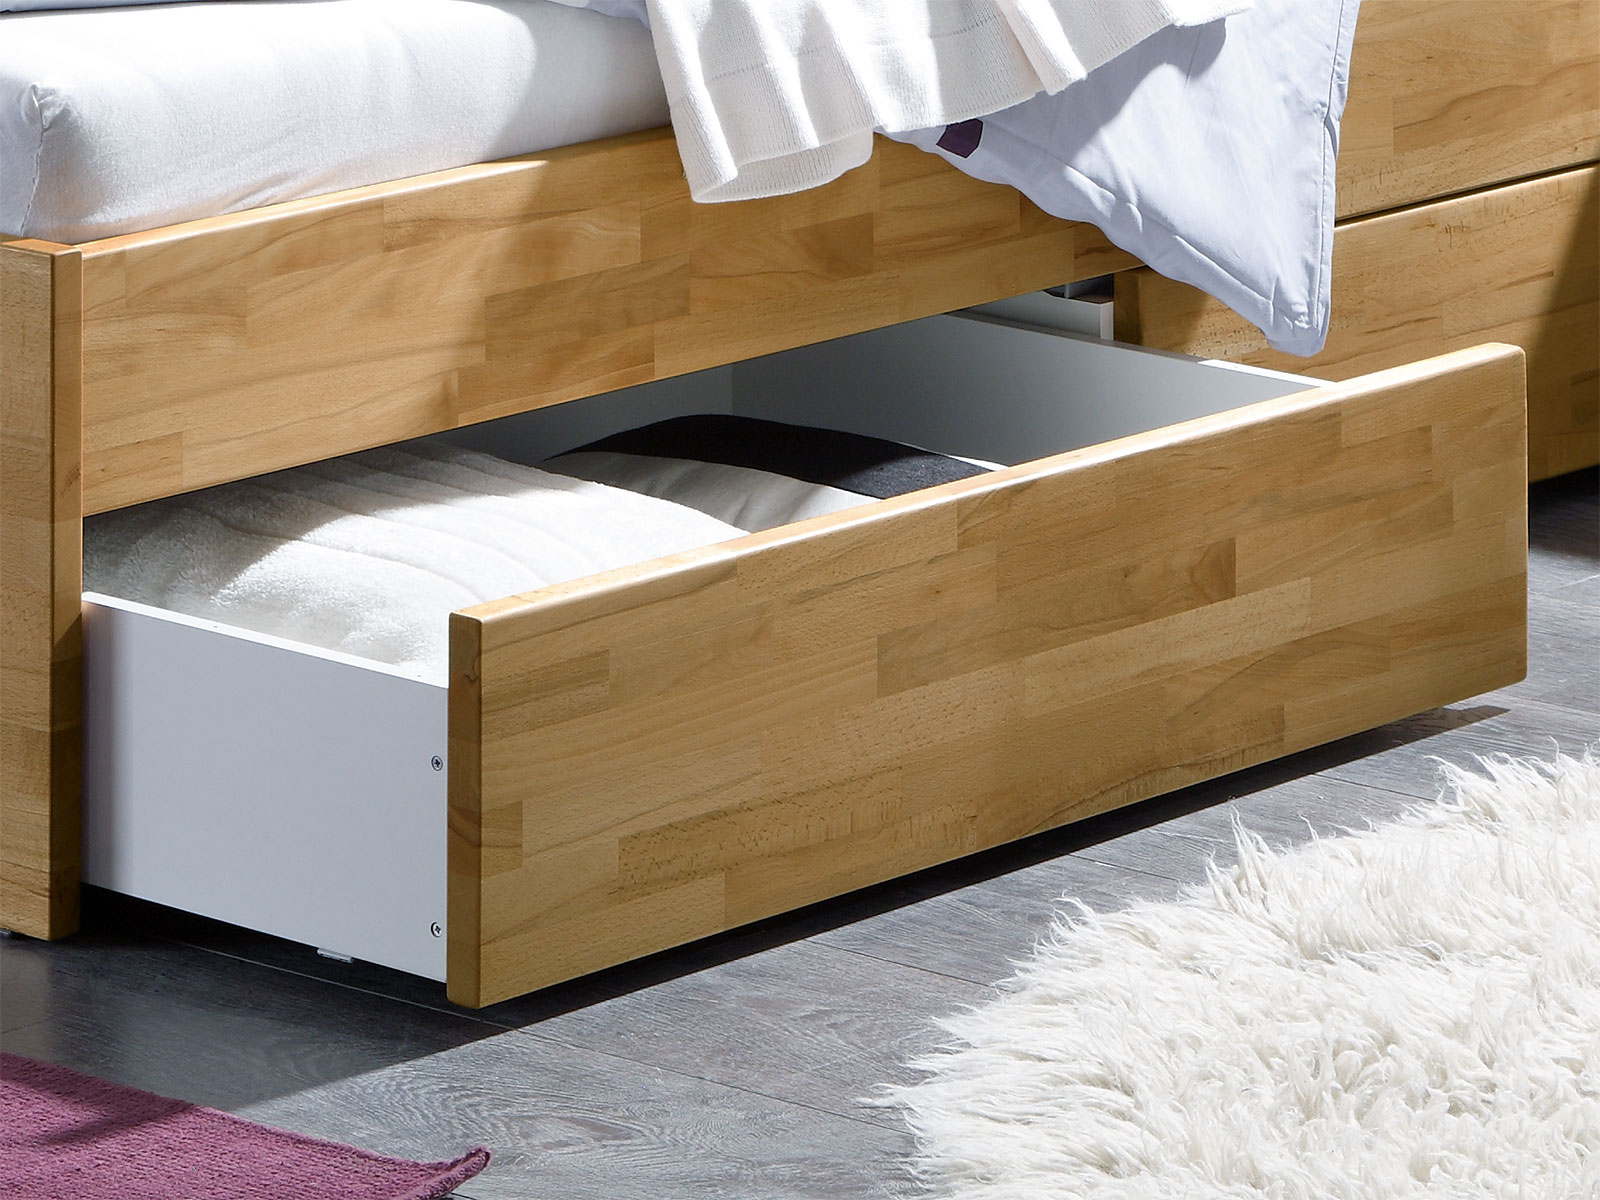 einzelbett aus holz mit schubladen kaufen leova. Black Bedroom Furniture Sets. Home Design Ideas